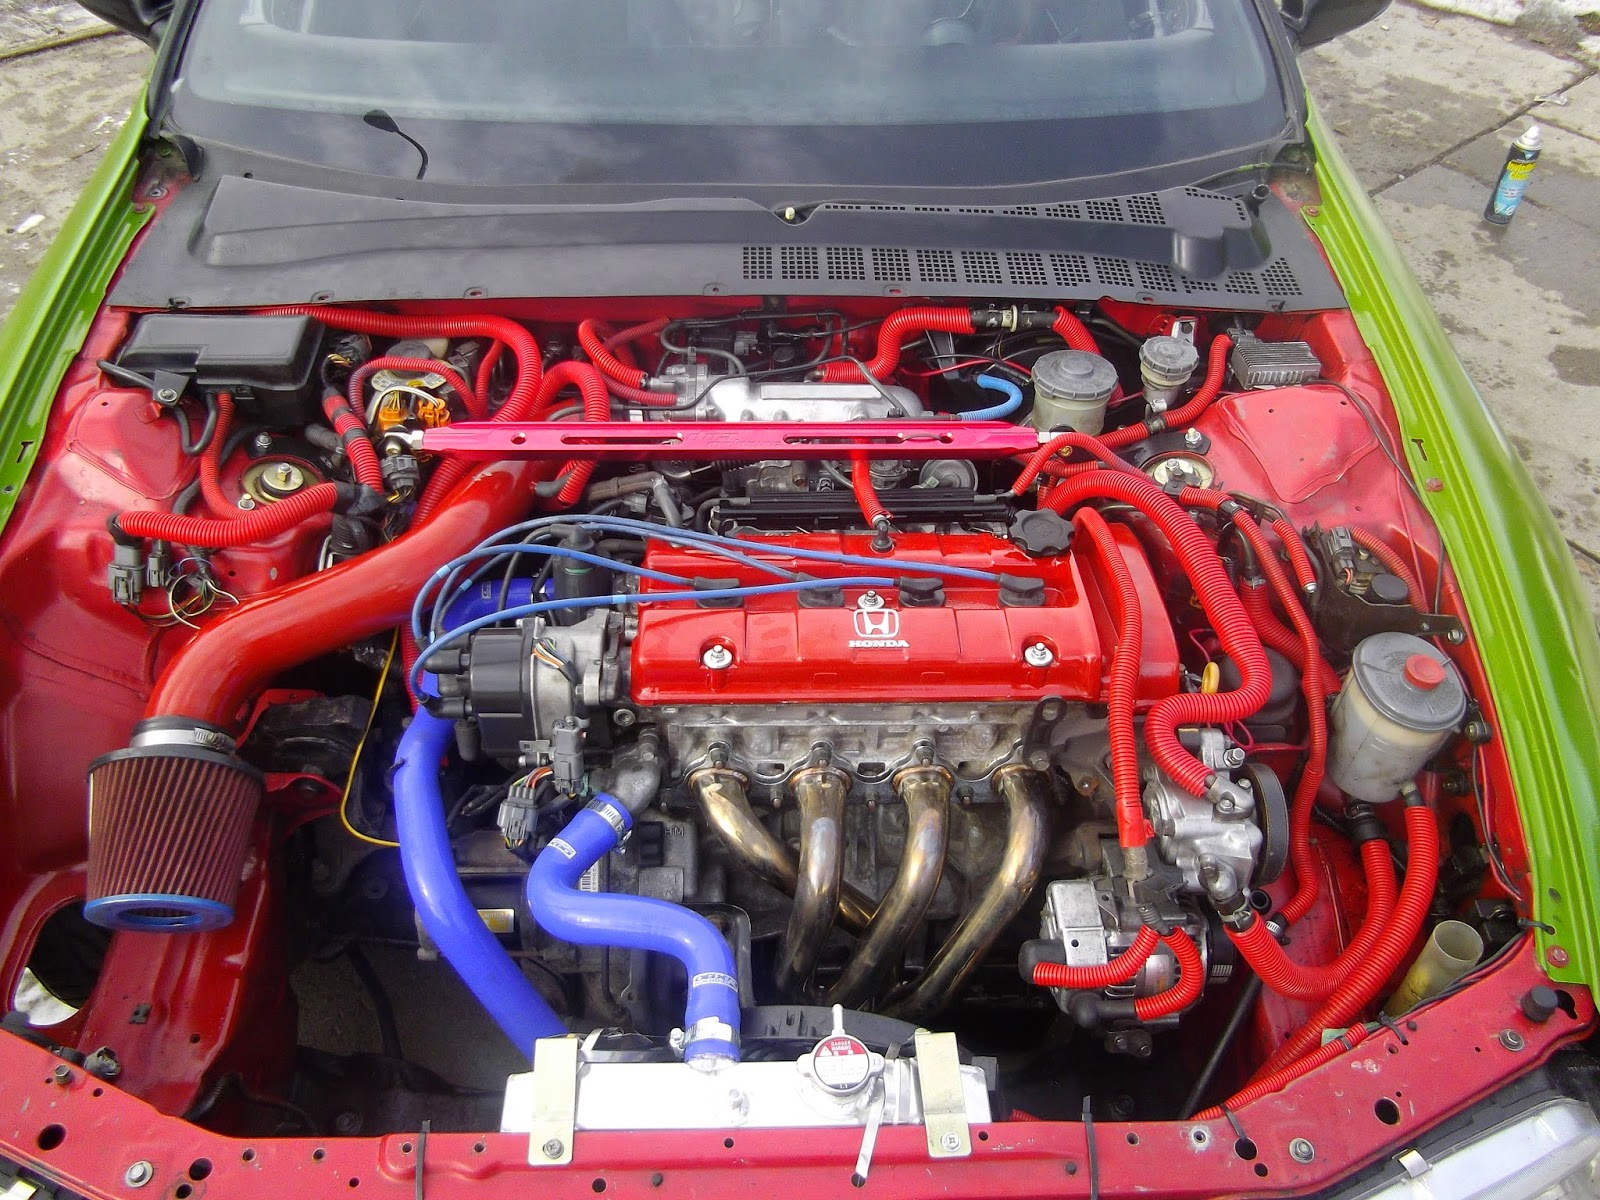 93 Prelude Fuse Box Electrical Wiring Diagrams 240sx Relocation 5th Gen Introduction To Sonata Build Rh